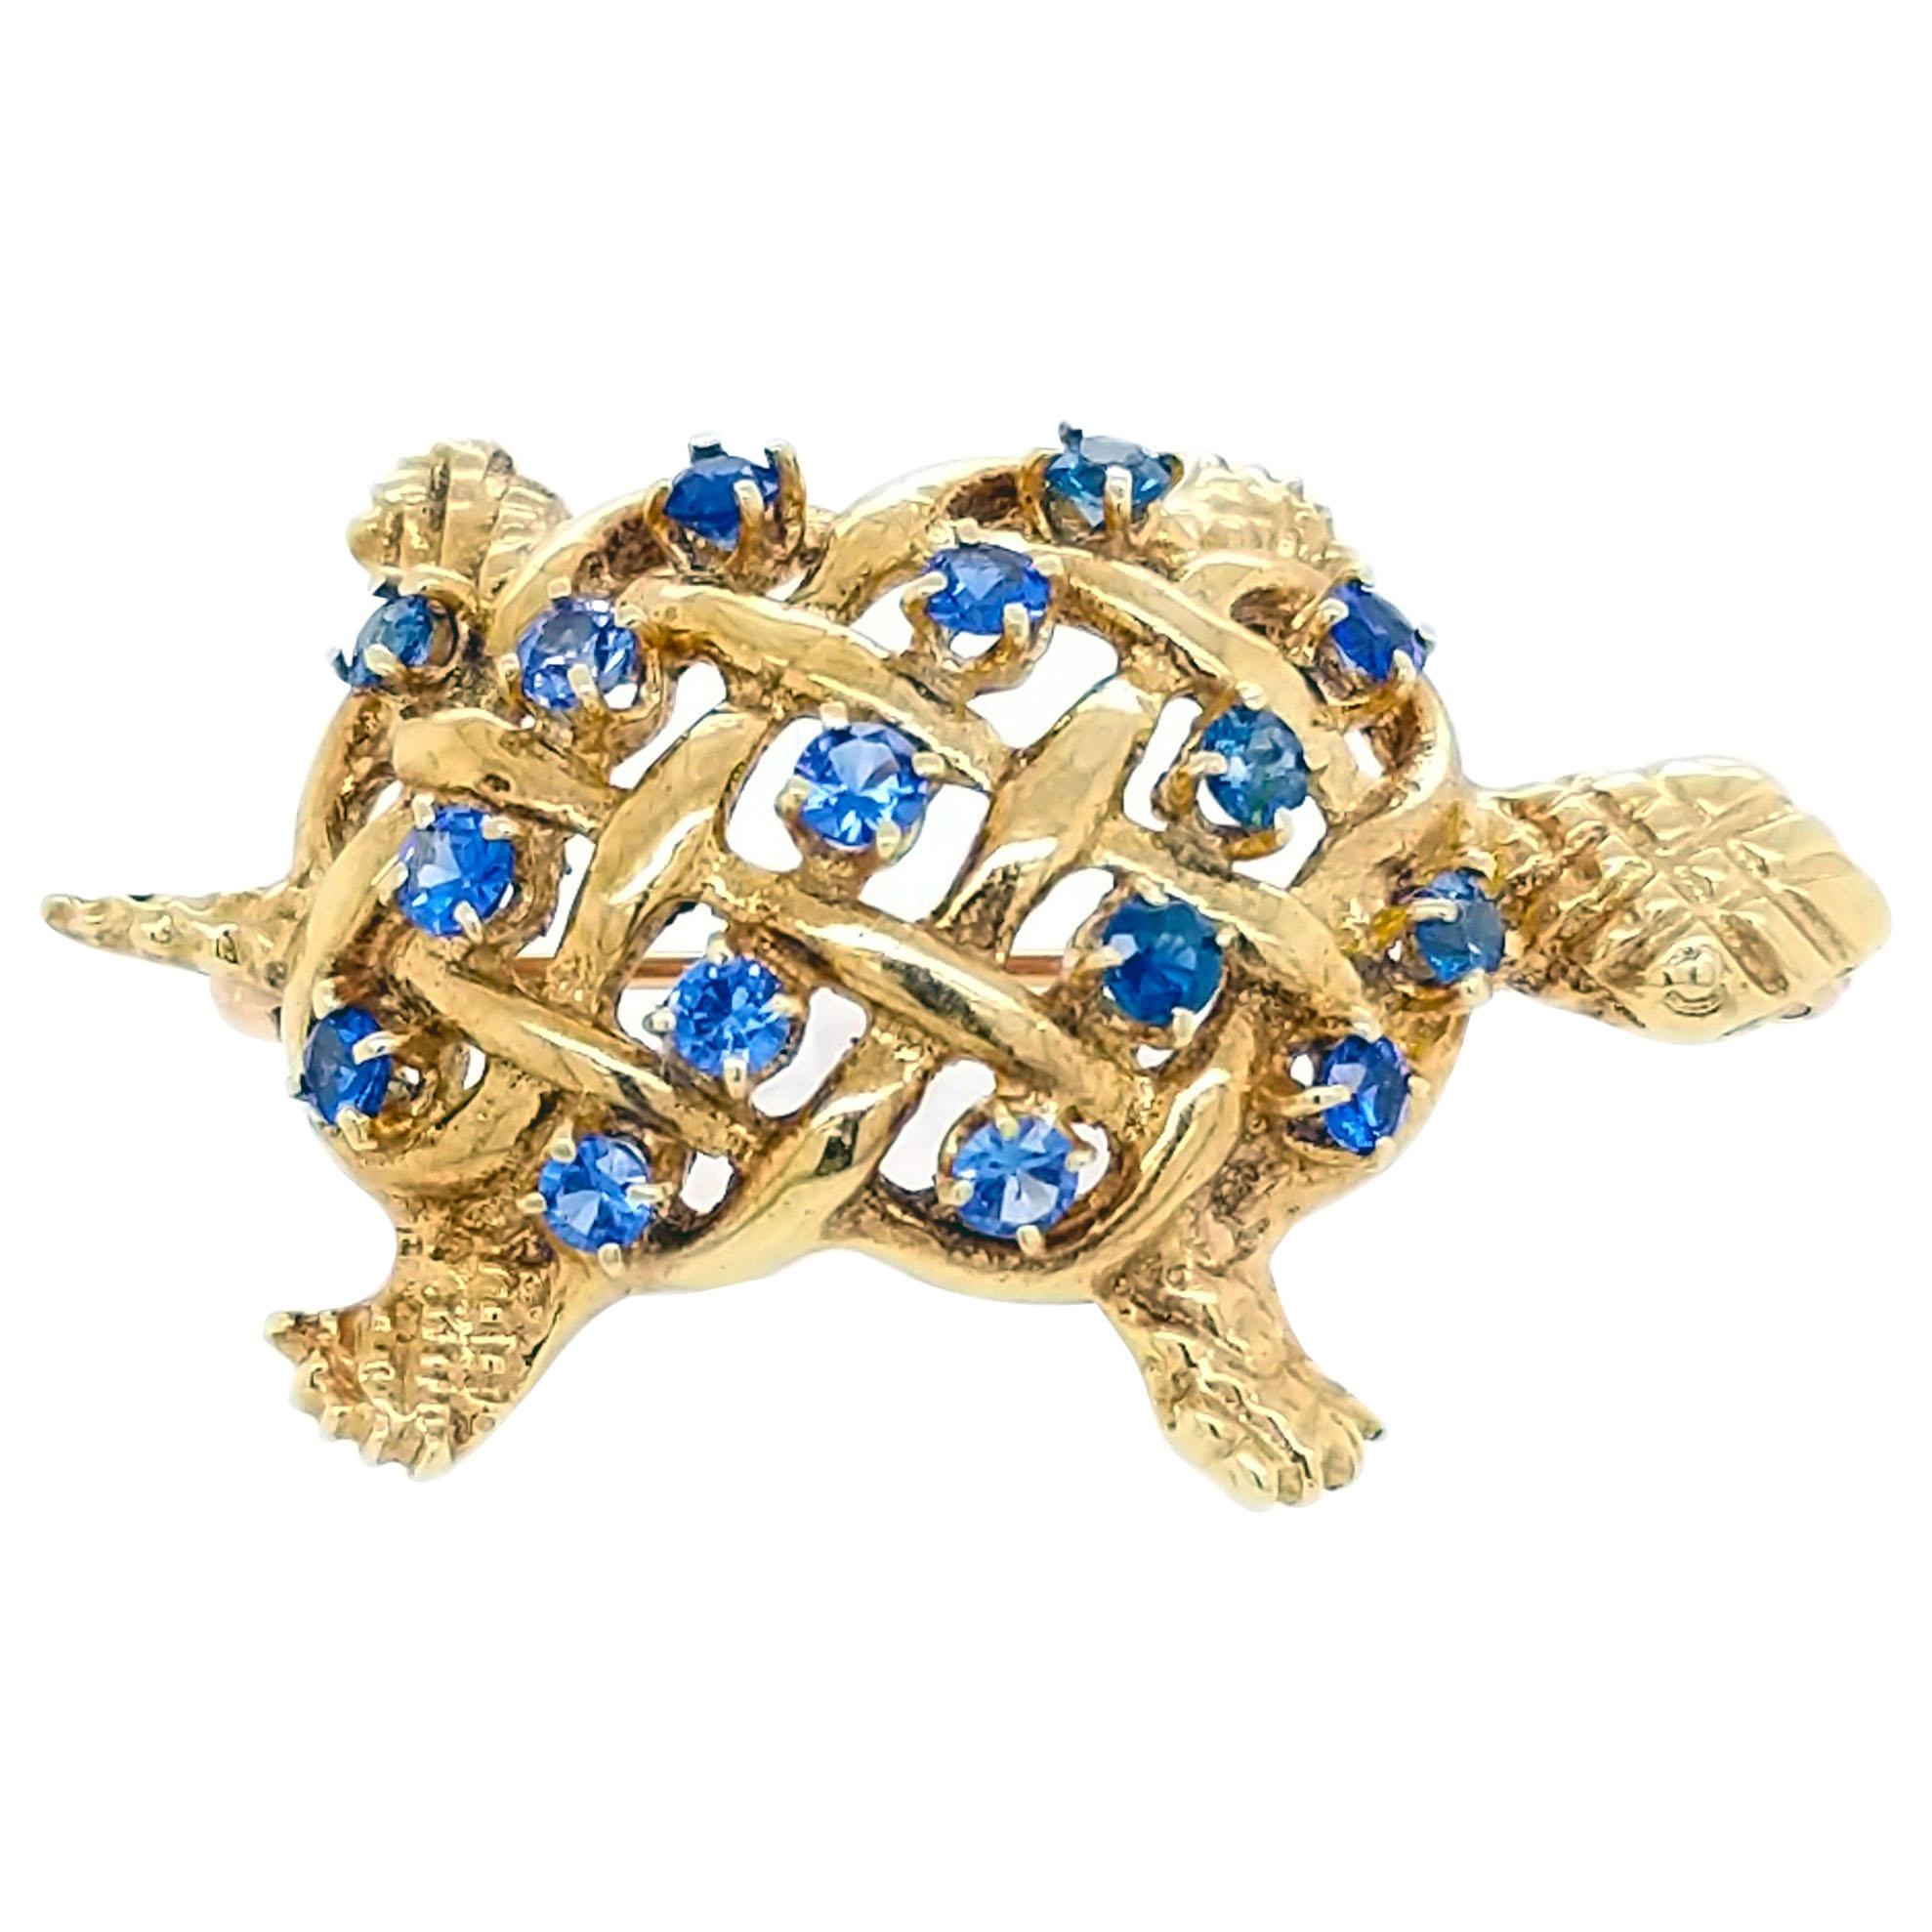 afb2d2bcb677f Antique Brooches and Cameos - 7,412 For Sale at 1stdibs